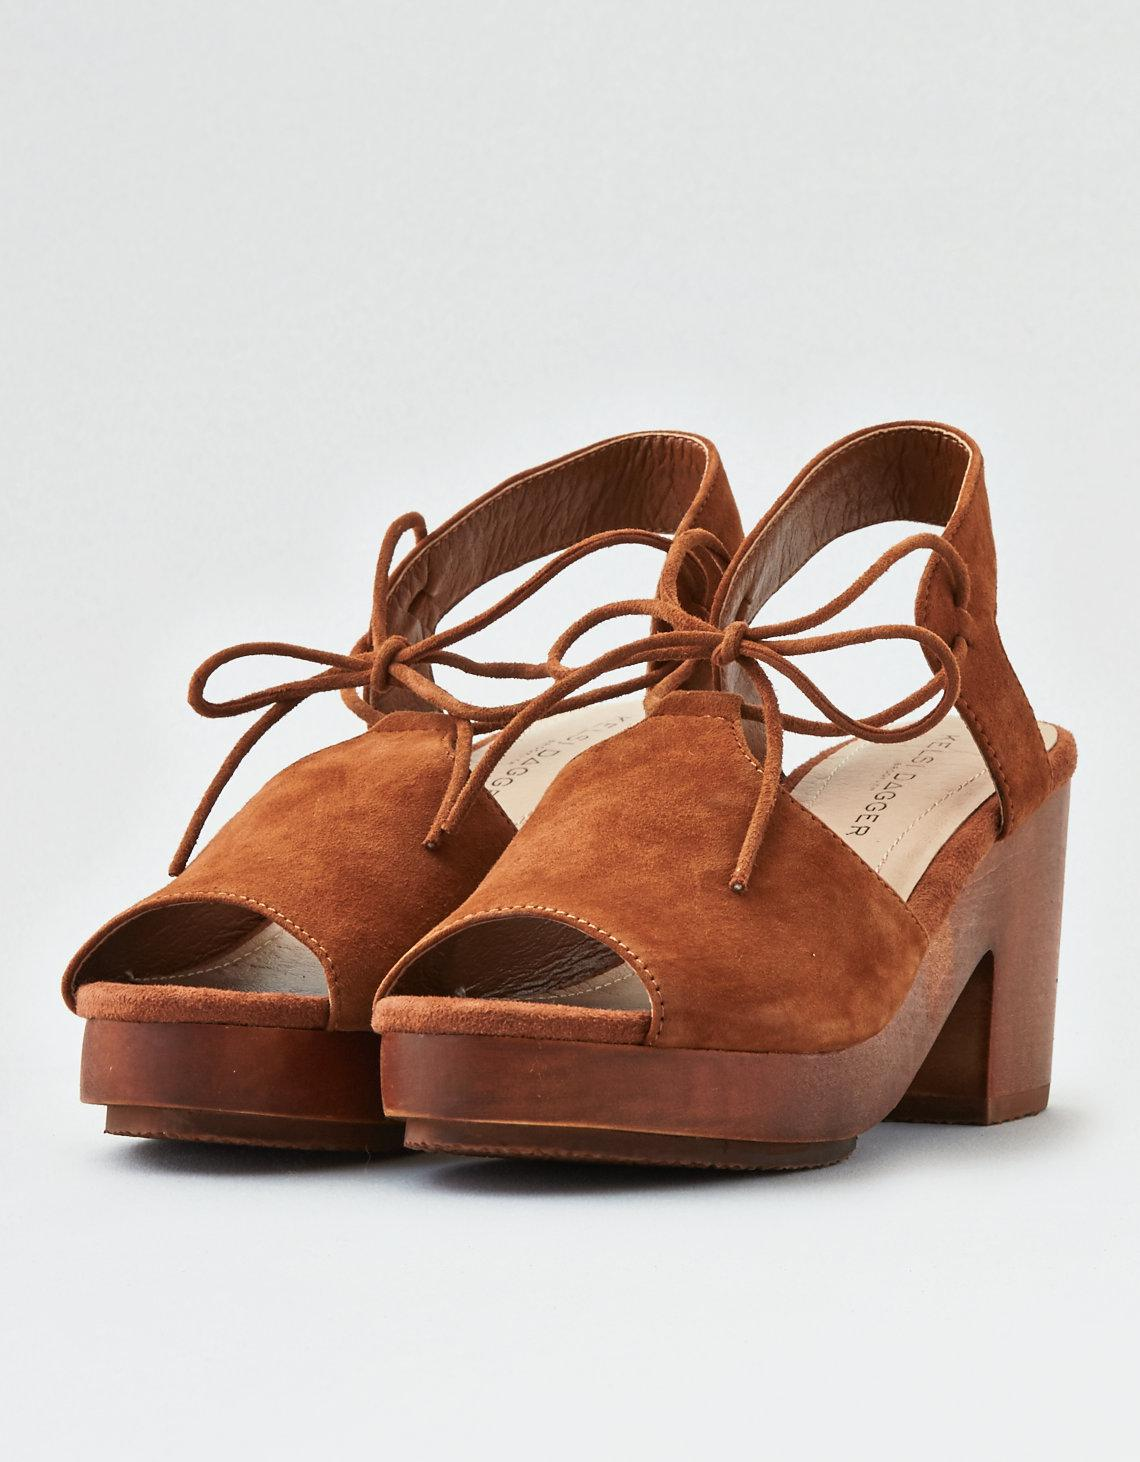 clearance for sale outlet shop for Kelsi Dagger Brooklyn Miram Sandal low shipping for sale free shipping outlet store qwUr0ZaJ